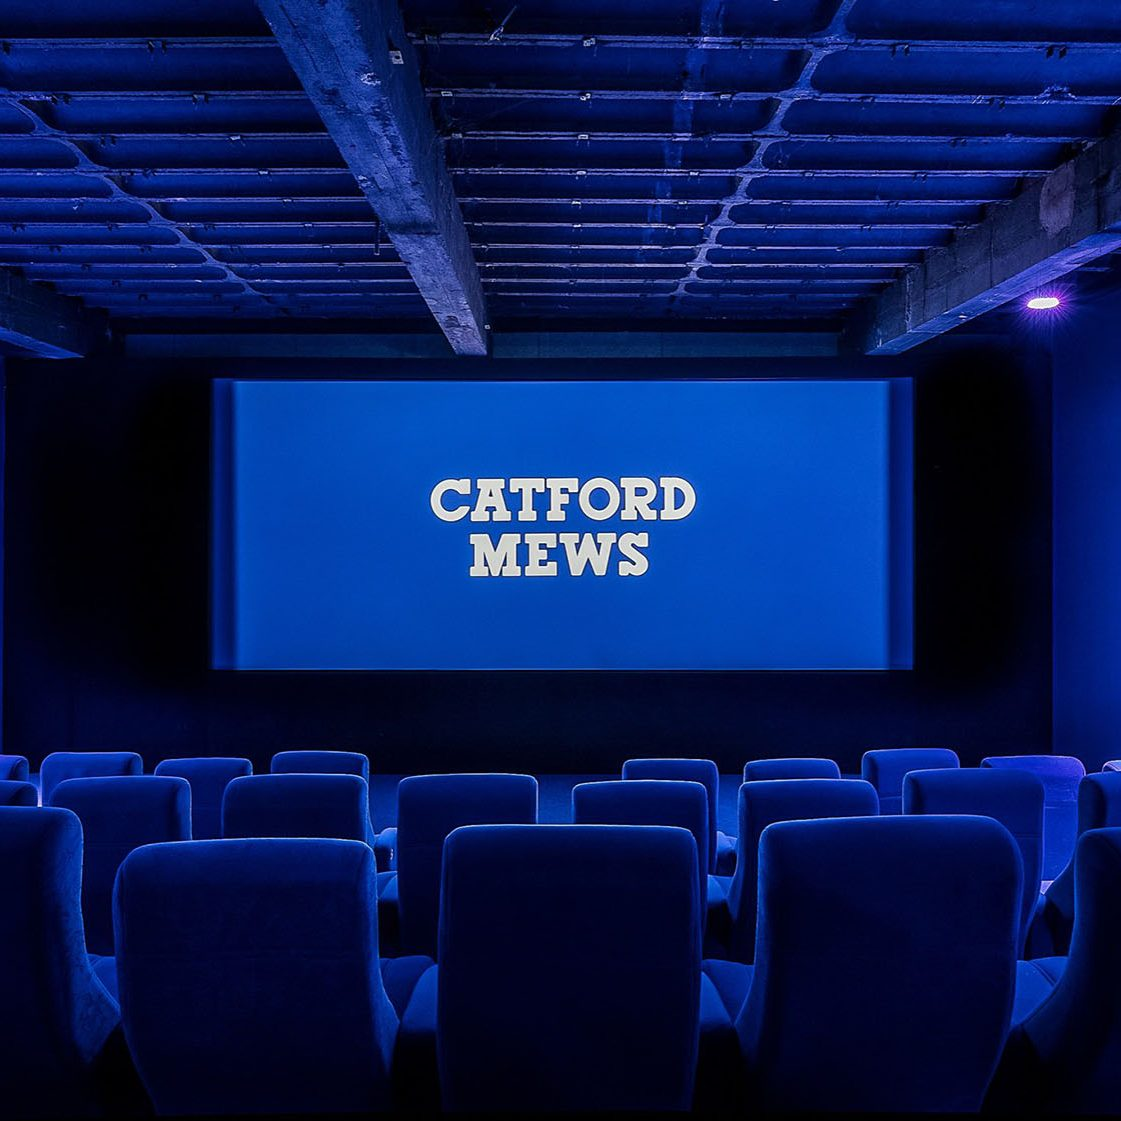 Catford Mews Cinema Auditorium with a blue overlay